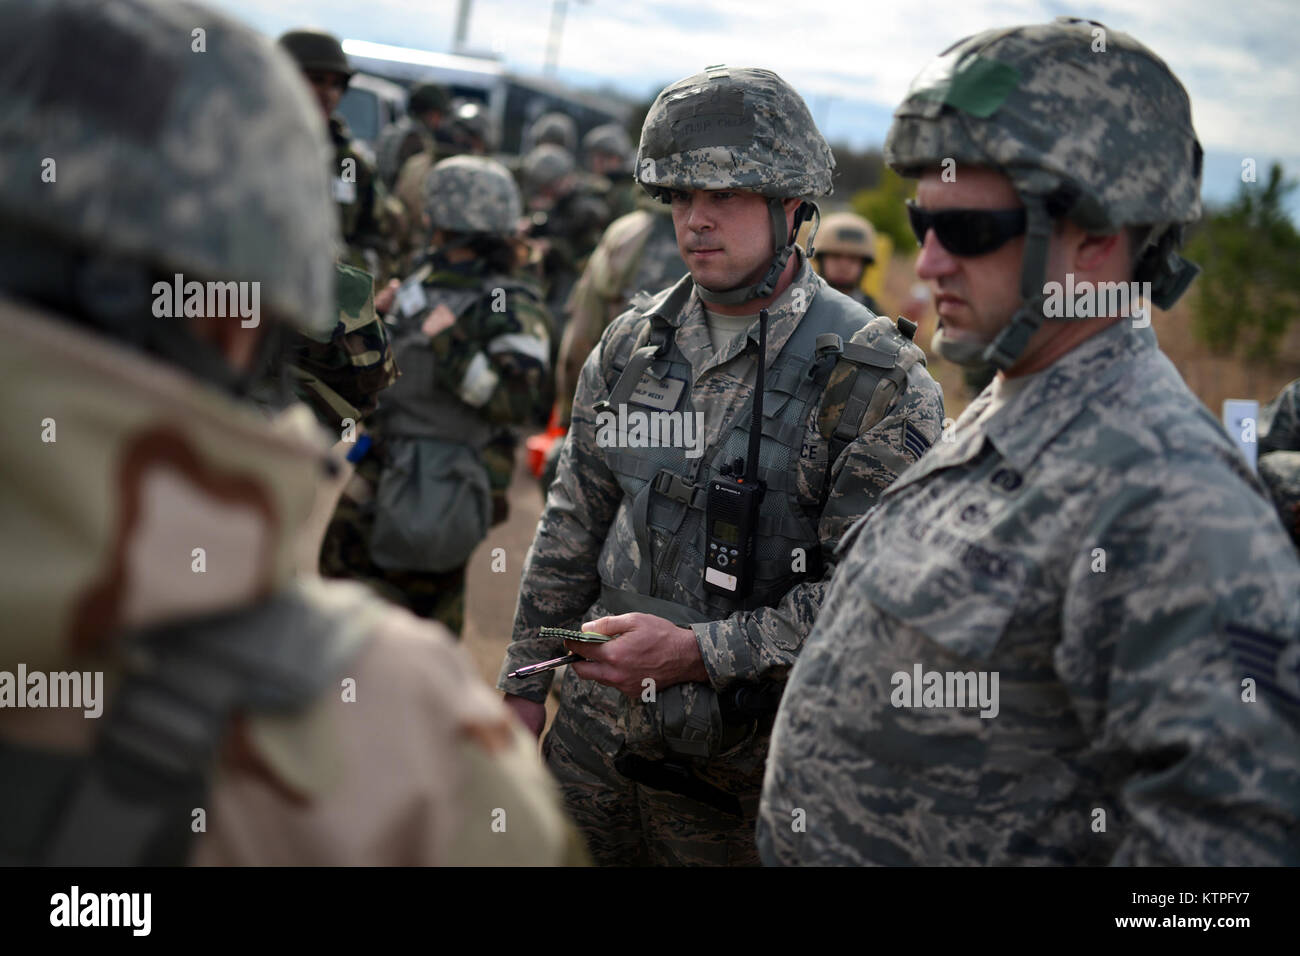 PERRY, GA - Senior Airman Phillip Meeks, an Air National Guard Emergency Manager, listens during a mission brief Stock Photo